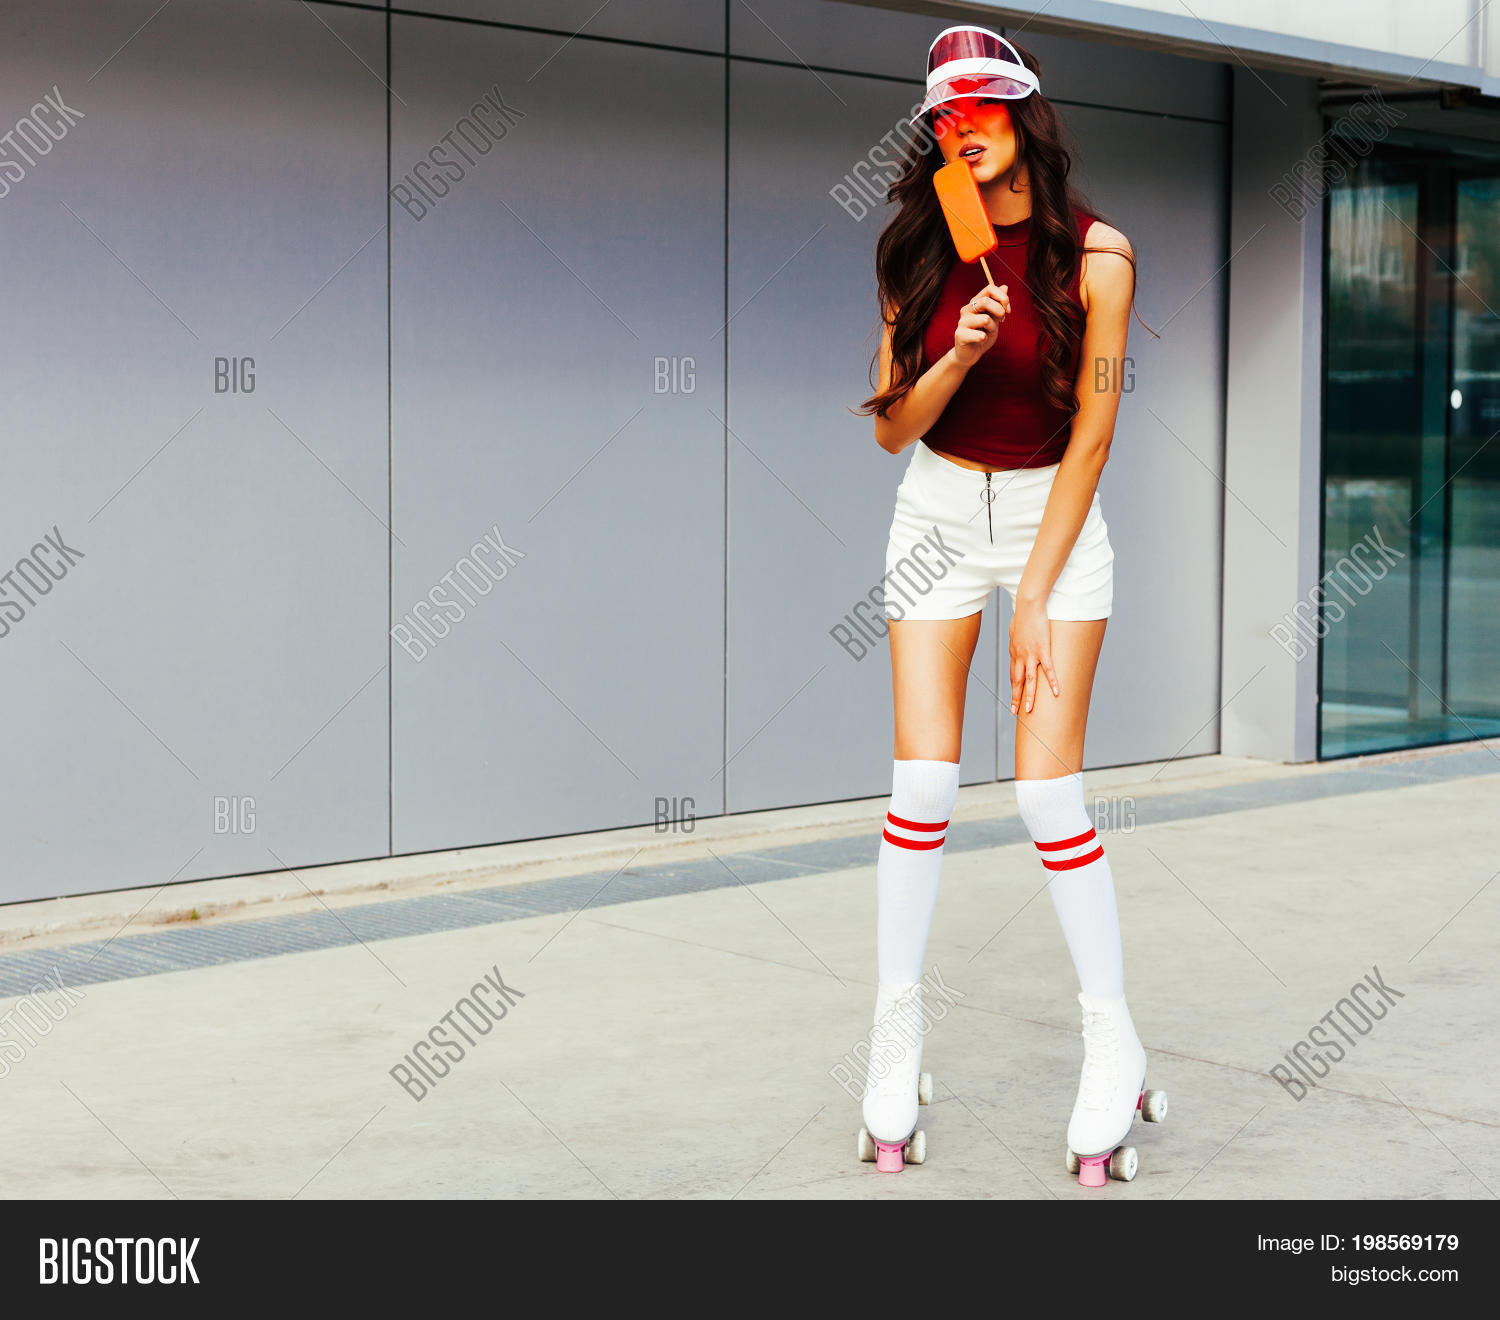 6d206318 Sunny portrait of an long haired leggy Asian girl in a red top white shorts  fashionable red Brim Visor Hat is enjoyed by ice cream. Outdoor.